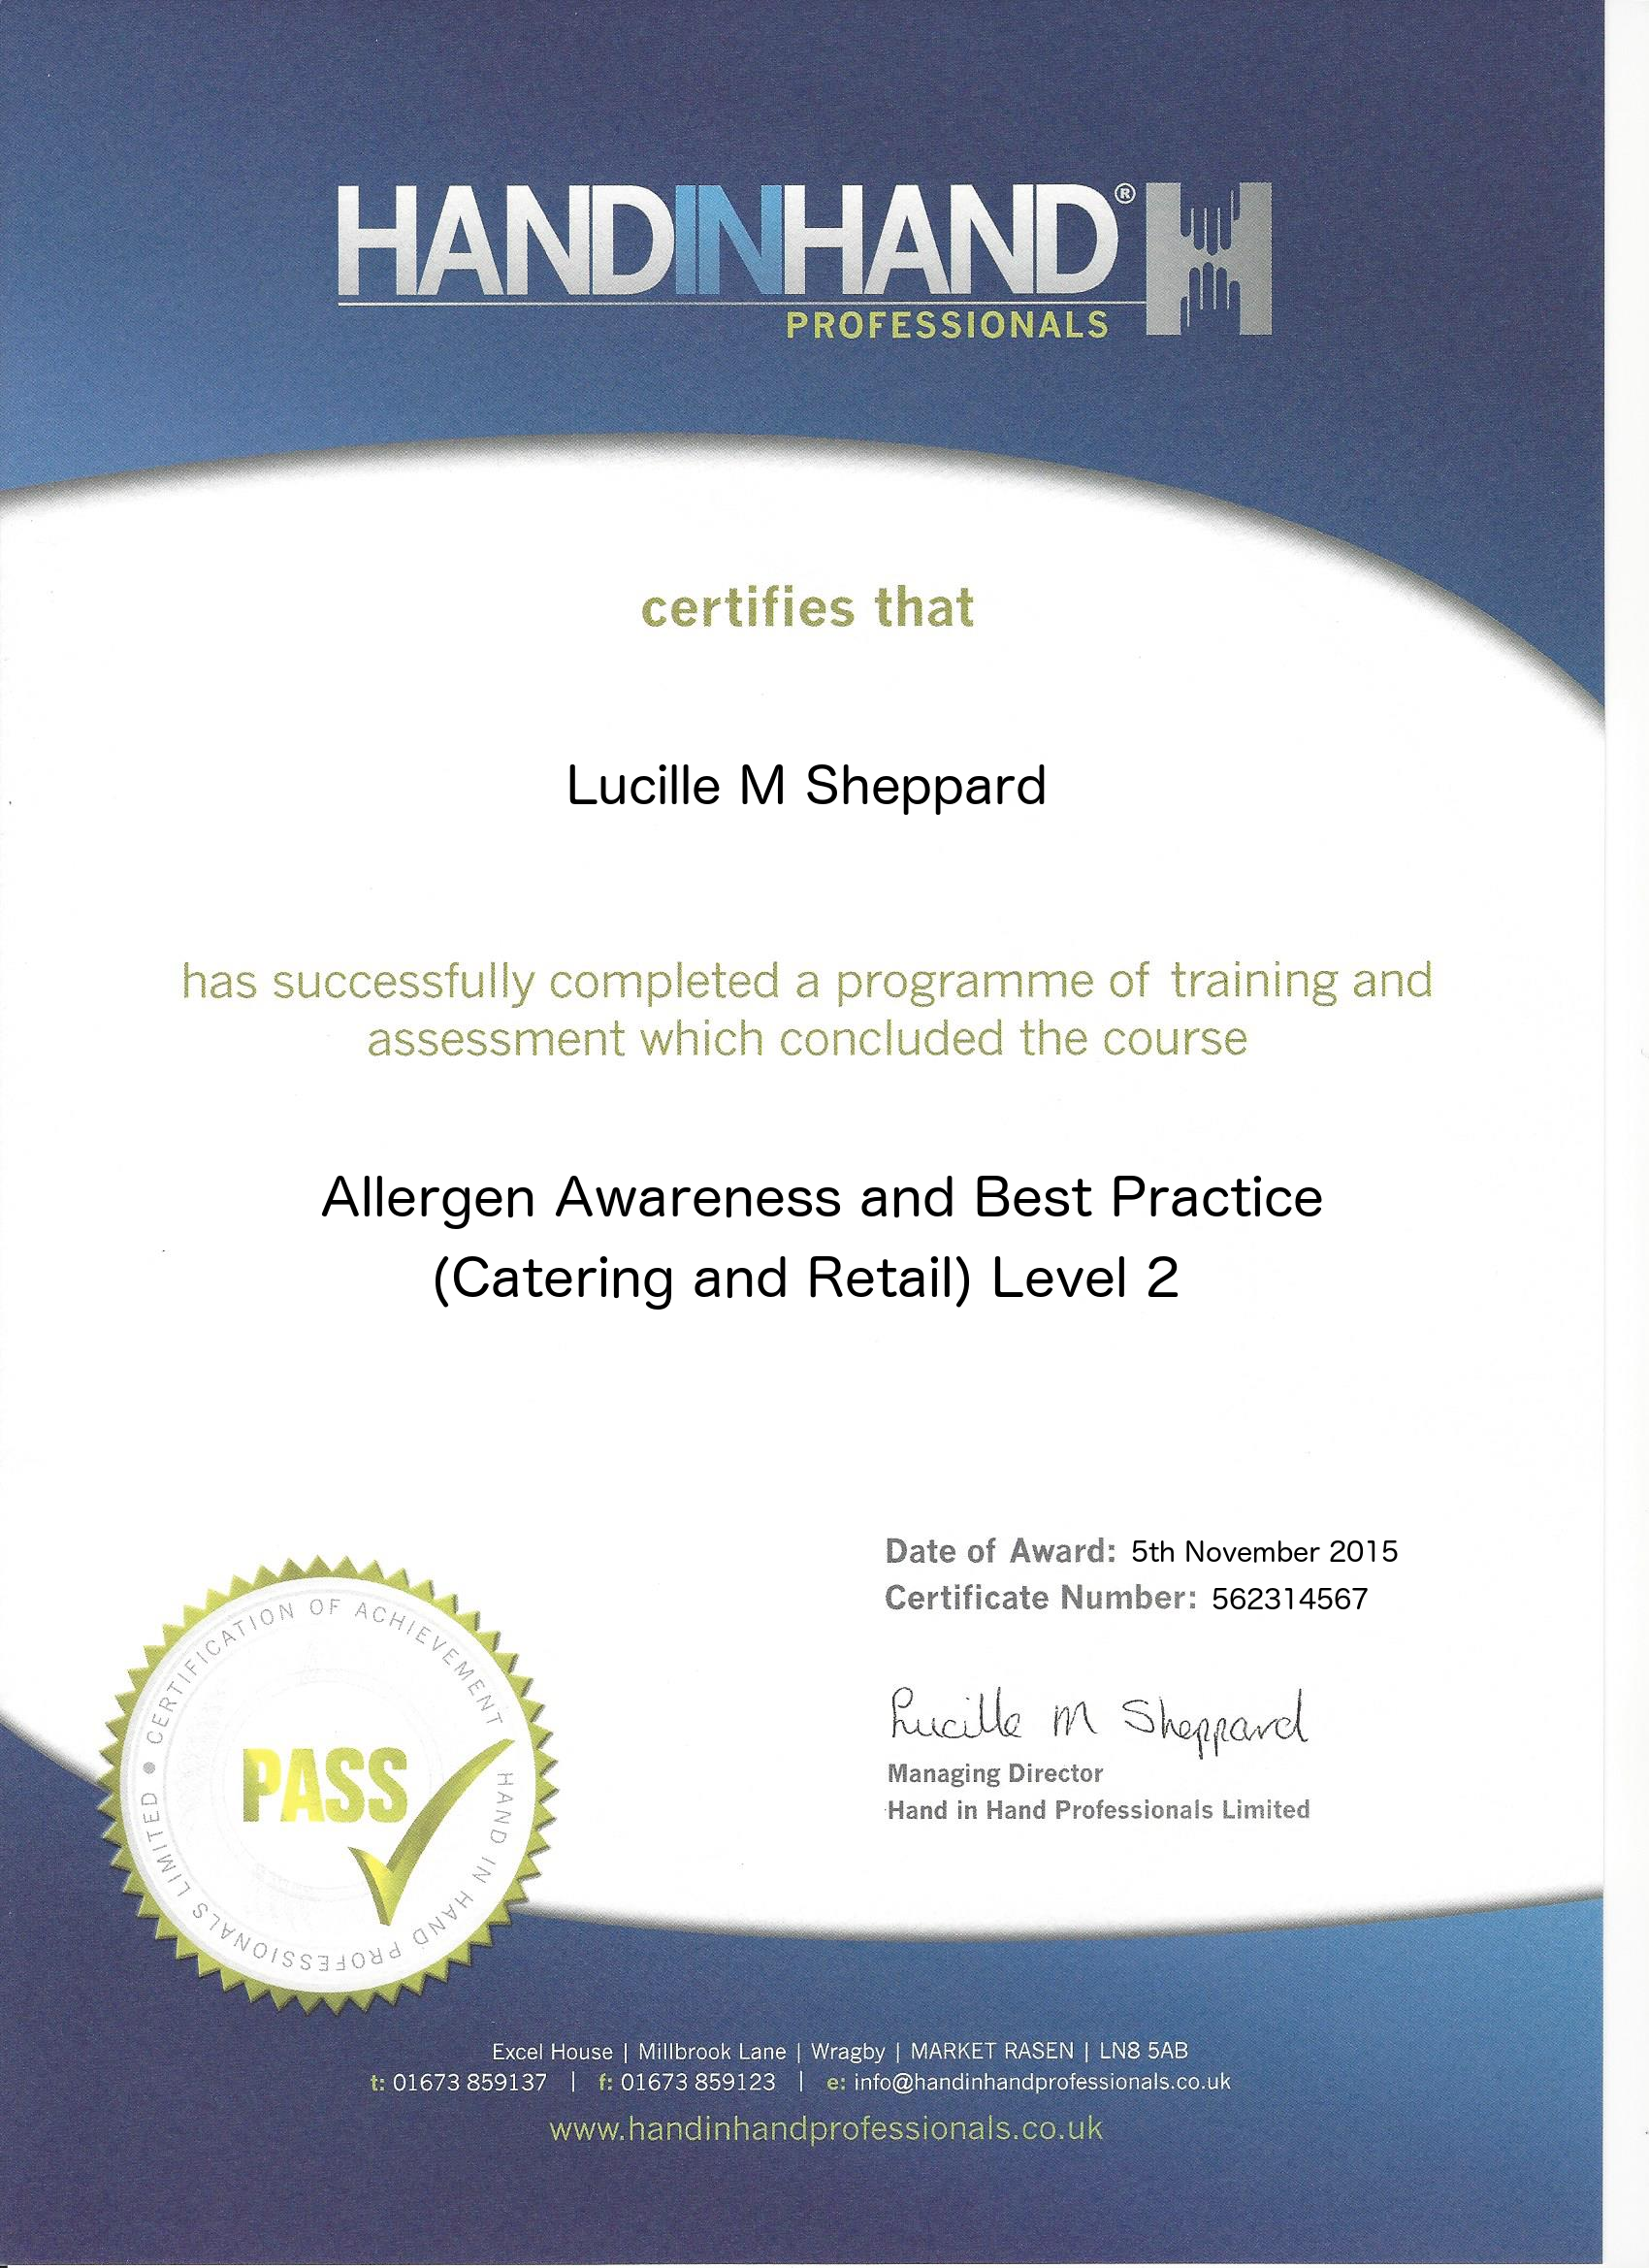 allergen awareness and best practice catering and retail level 2 course certificate